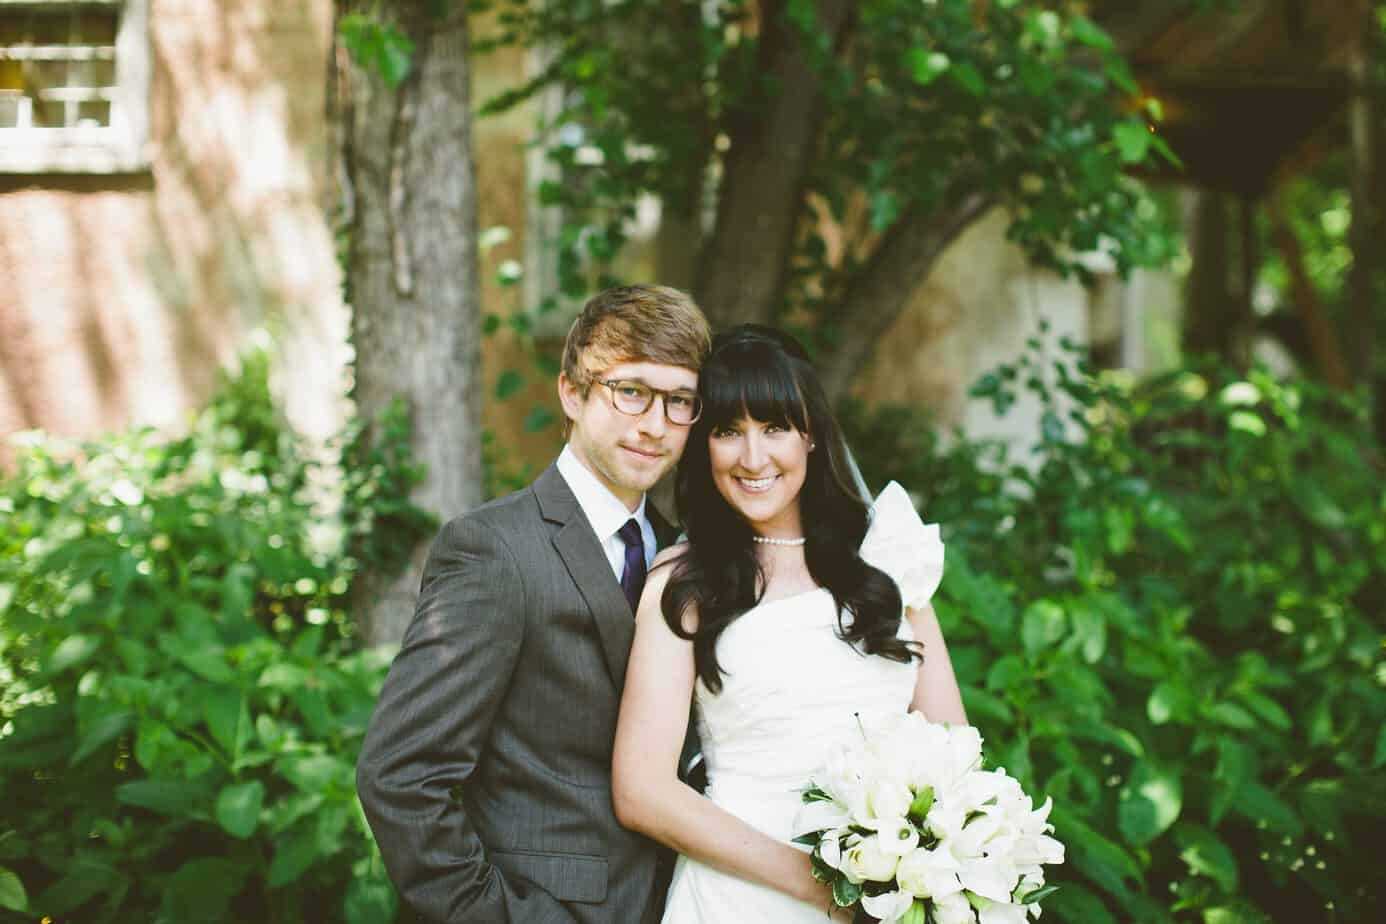 me and alex at our wedding